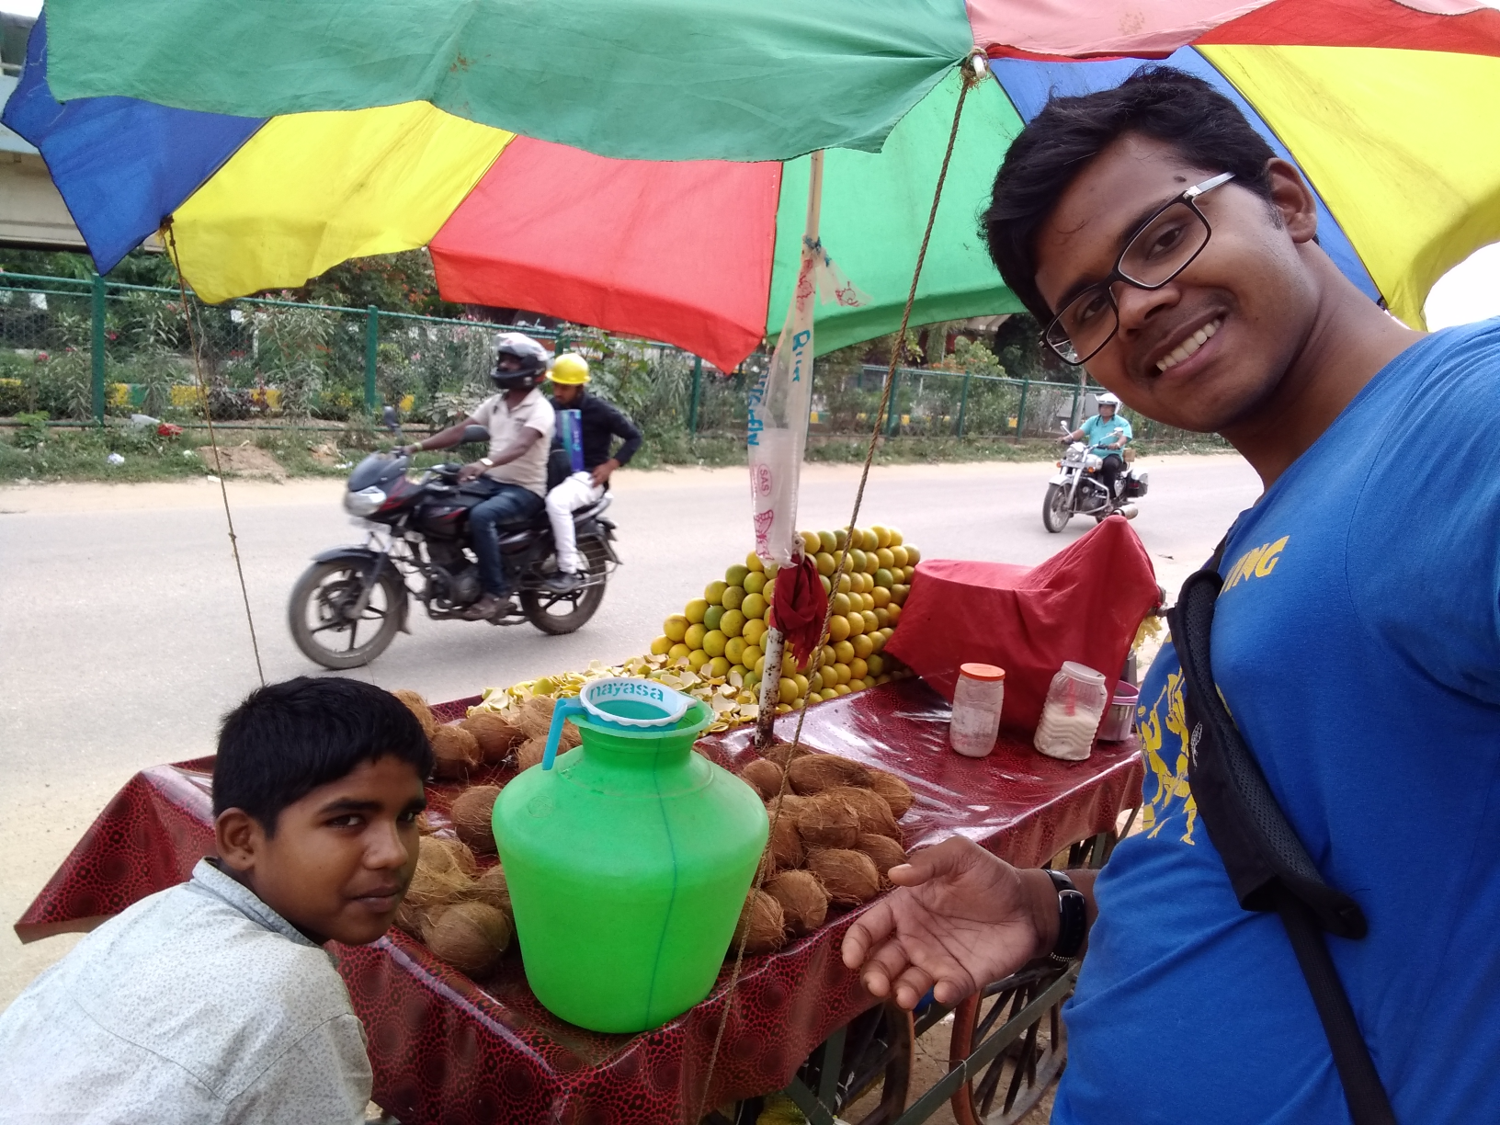 Juice vendor in the streets of Bangaluru   While doing market studies in India, Anurag discussed the advantages of portable and cheap electricity with a young street vendor.